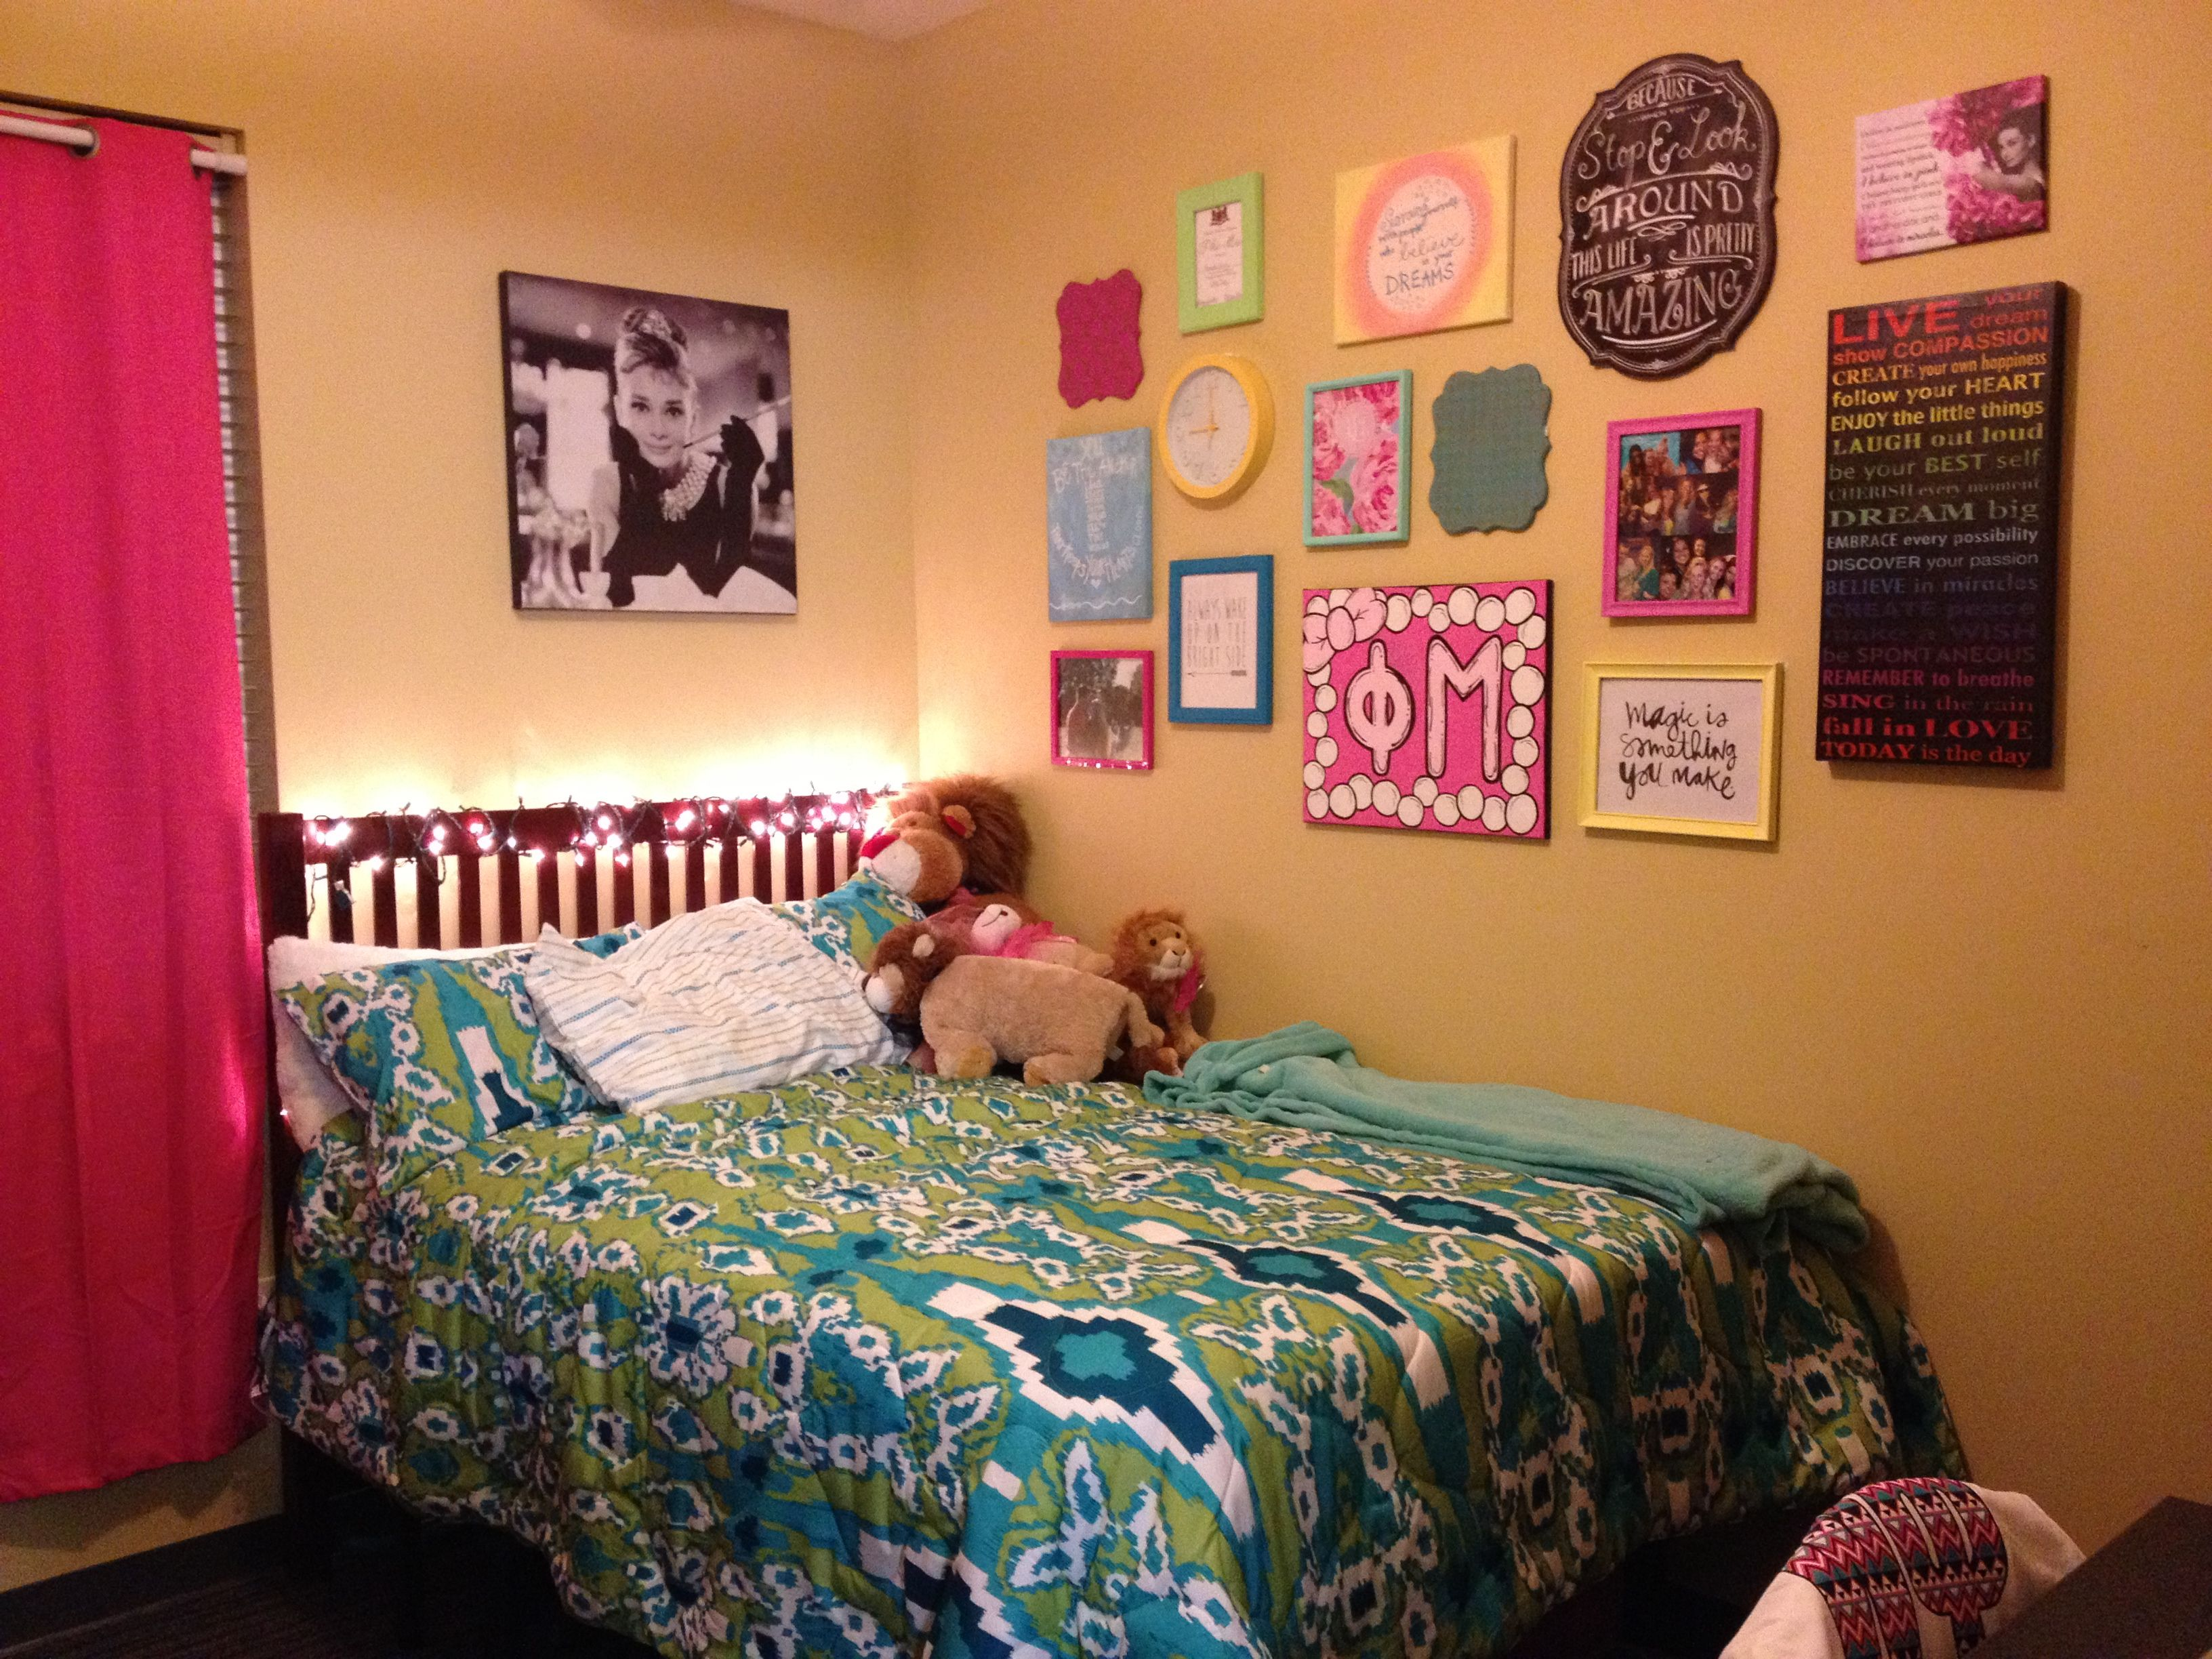 Dorm Room Wall Decor With Images Girls Room Wall Decor Dorm